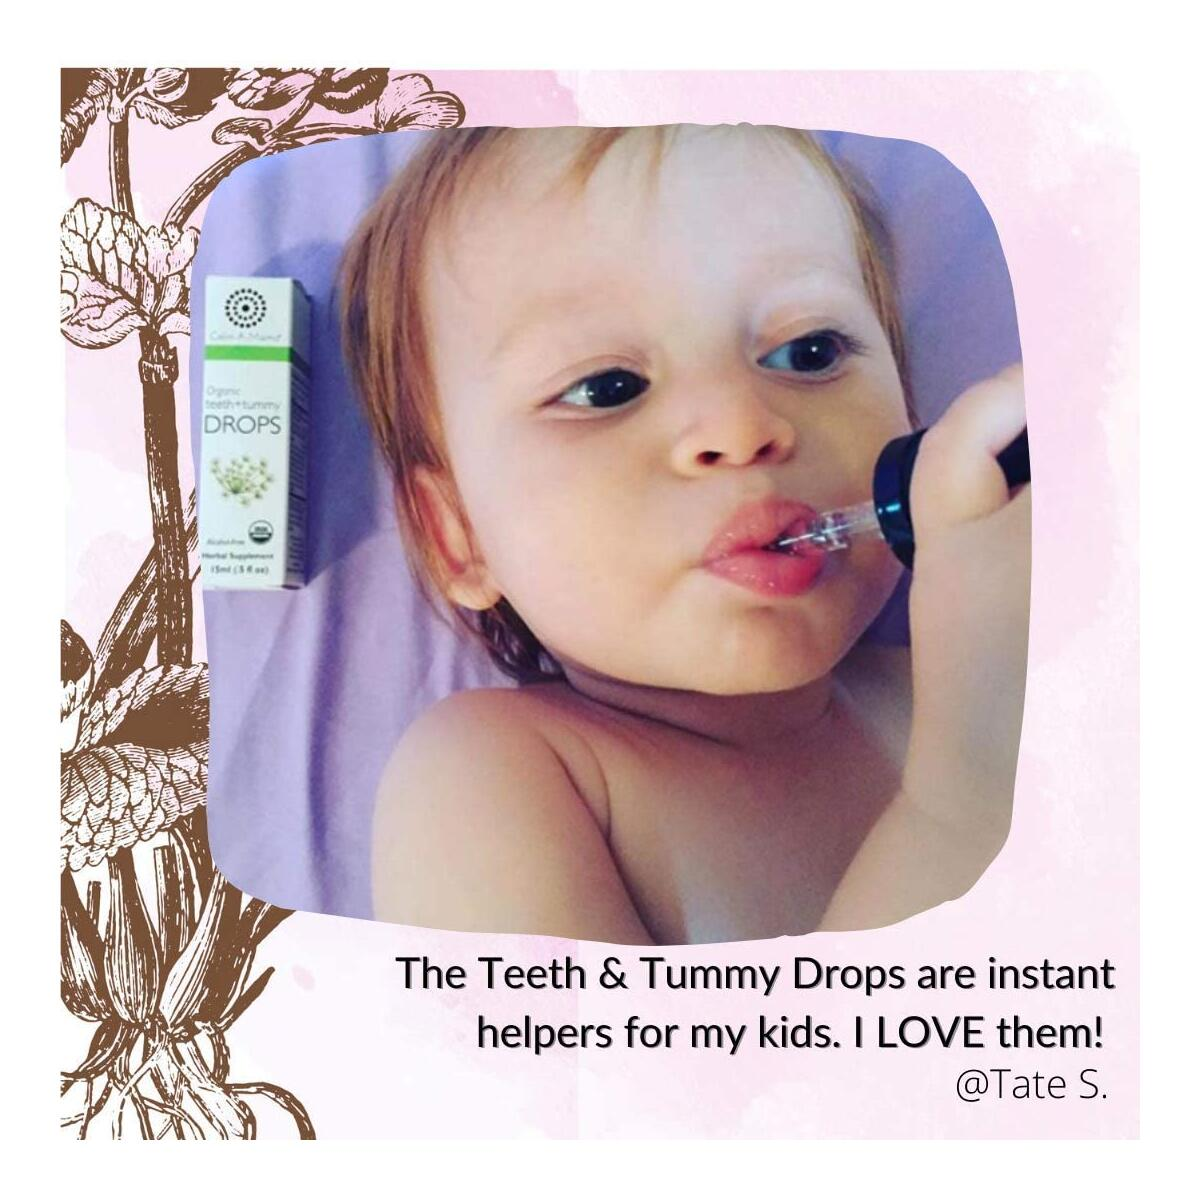 Organic Teeth and Tummy Pain Relief Drops for Babies (0.5oz -15ml) - Plant-based Drops for Toothache and Tummy Pains Colics - Made in the USA with Organic Fennel Extract - 75 Servings